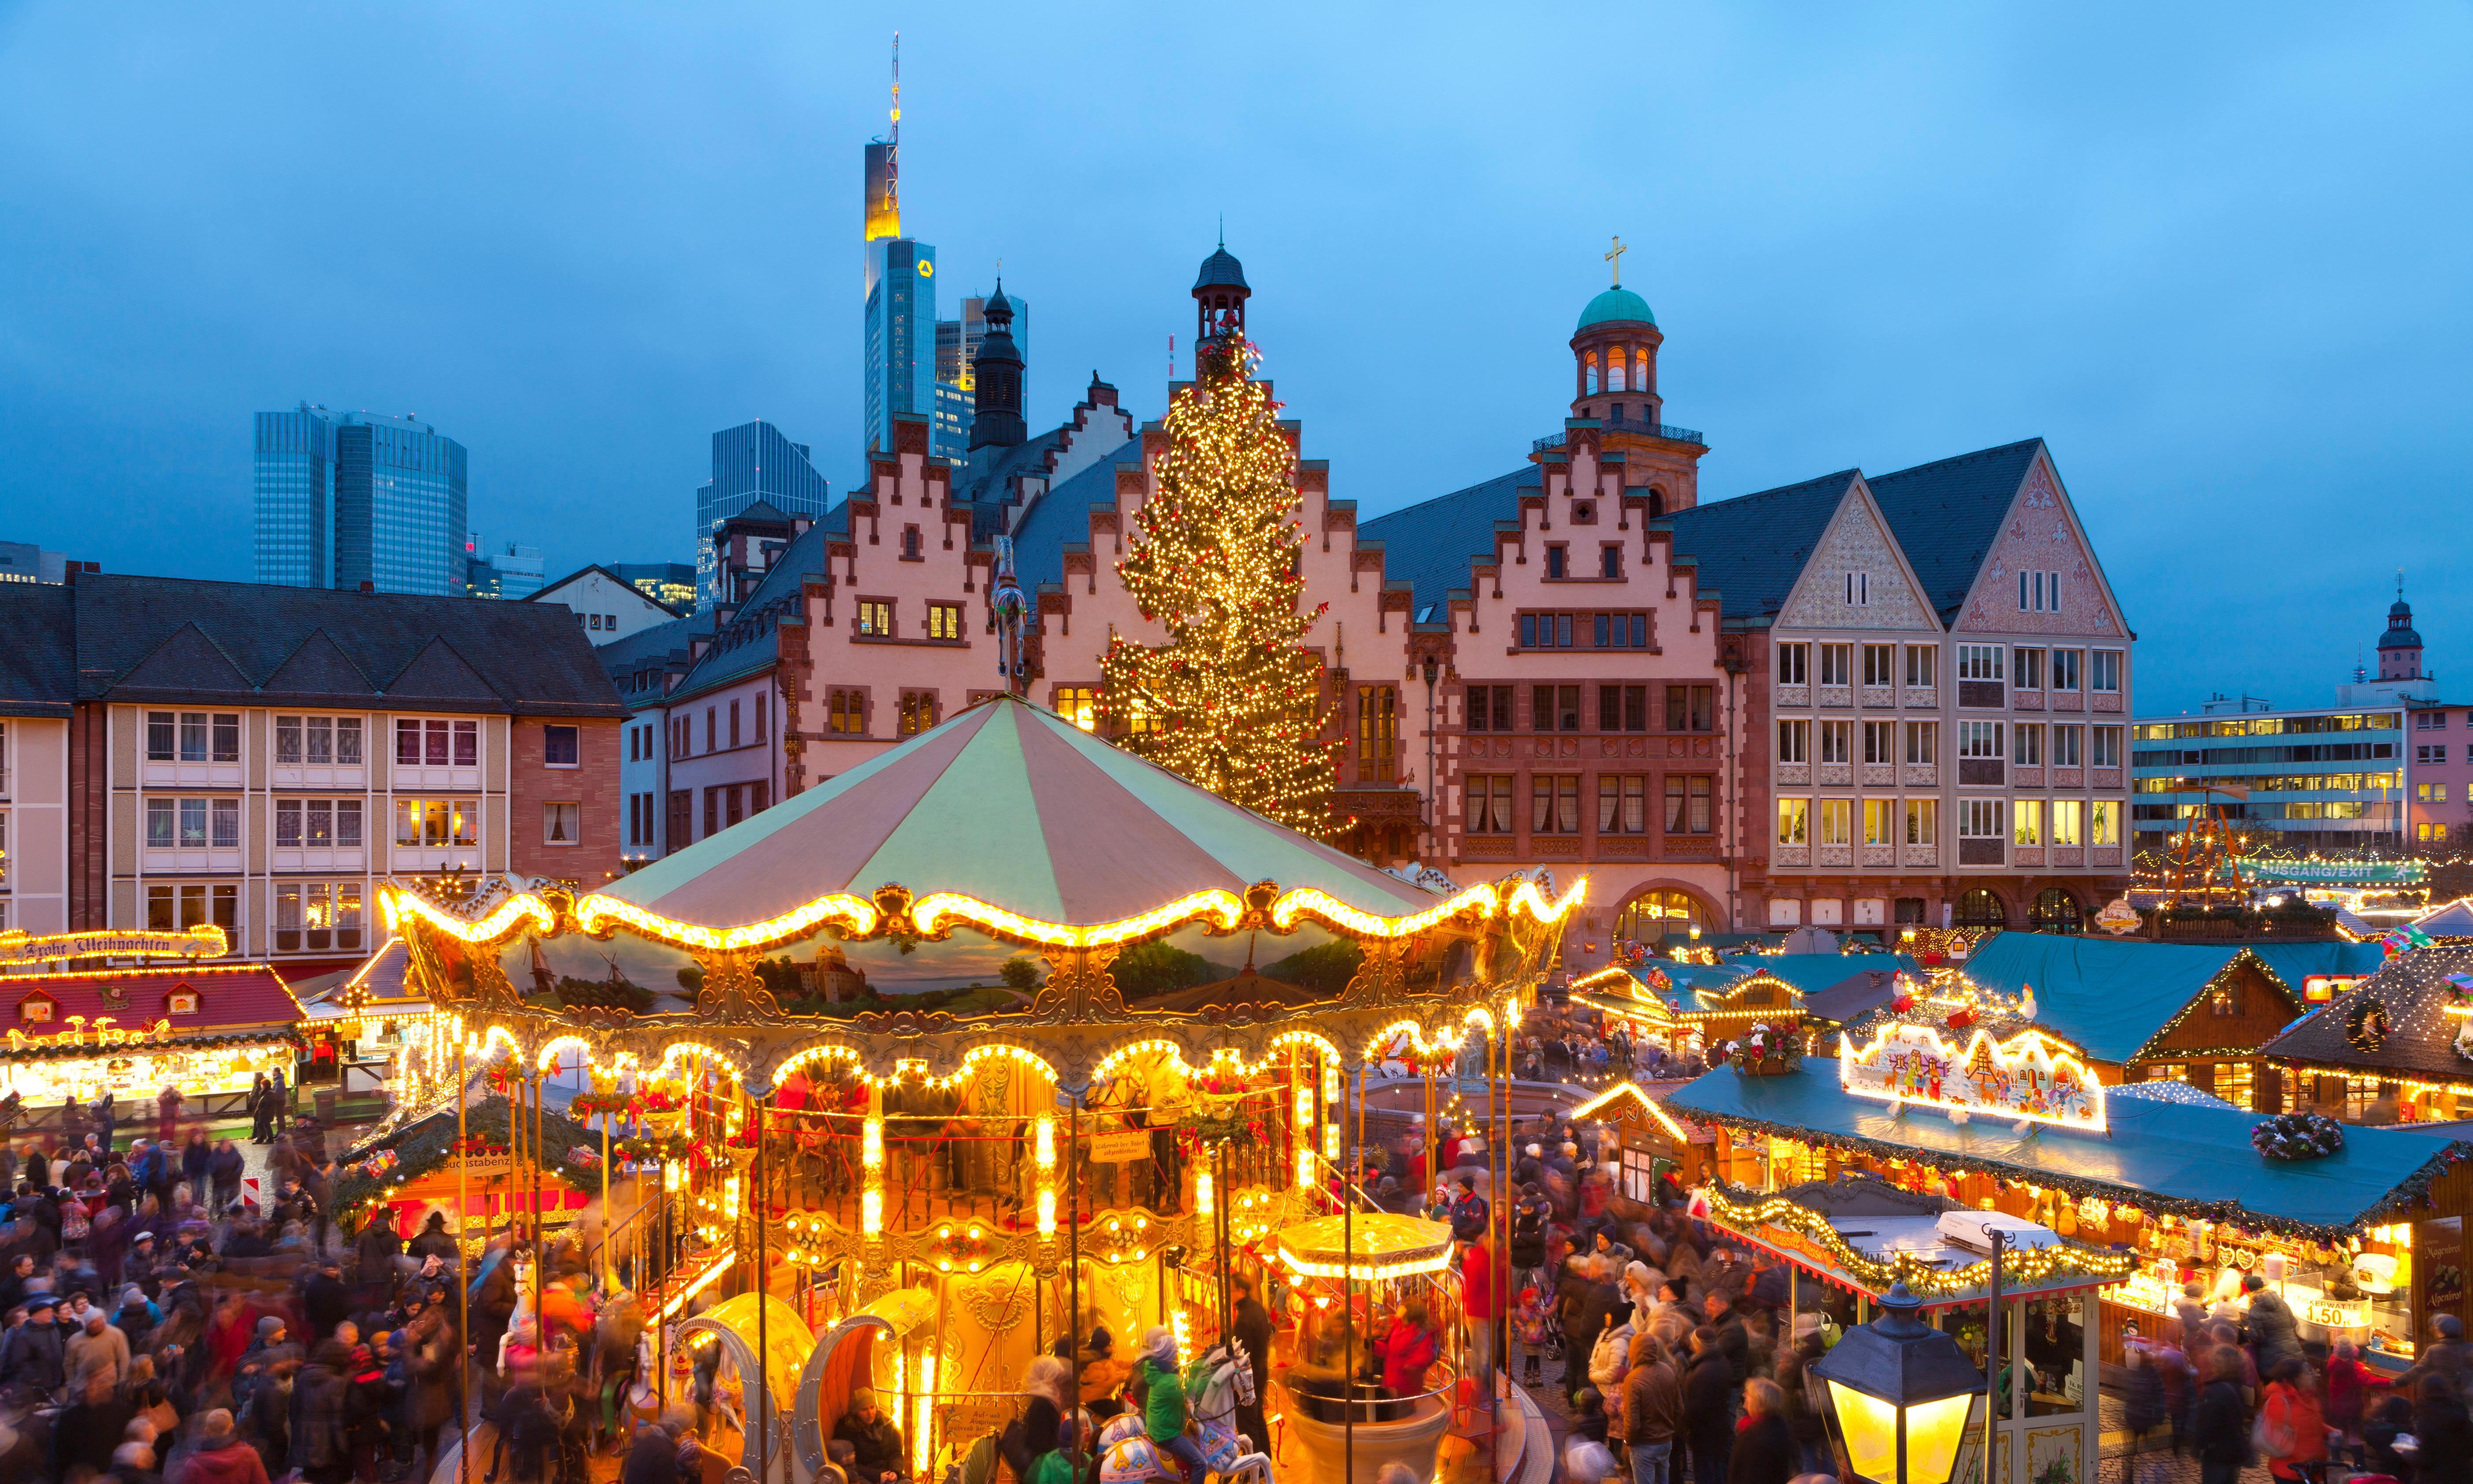 Frankfurt city guide: what to see plus the best bars, restaurants and hotels